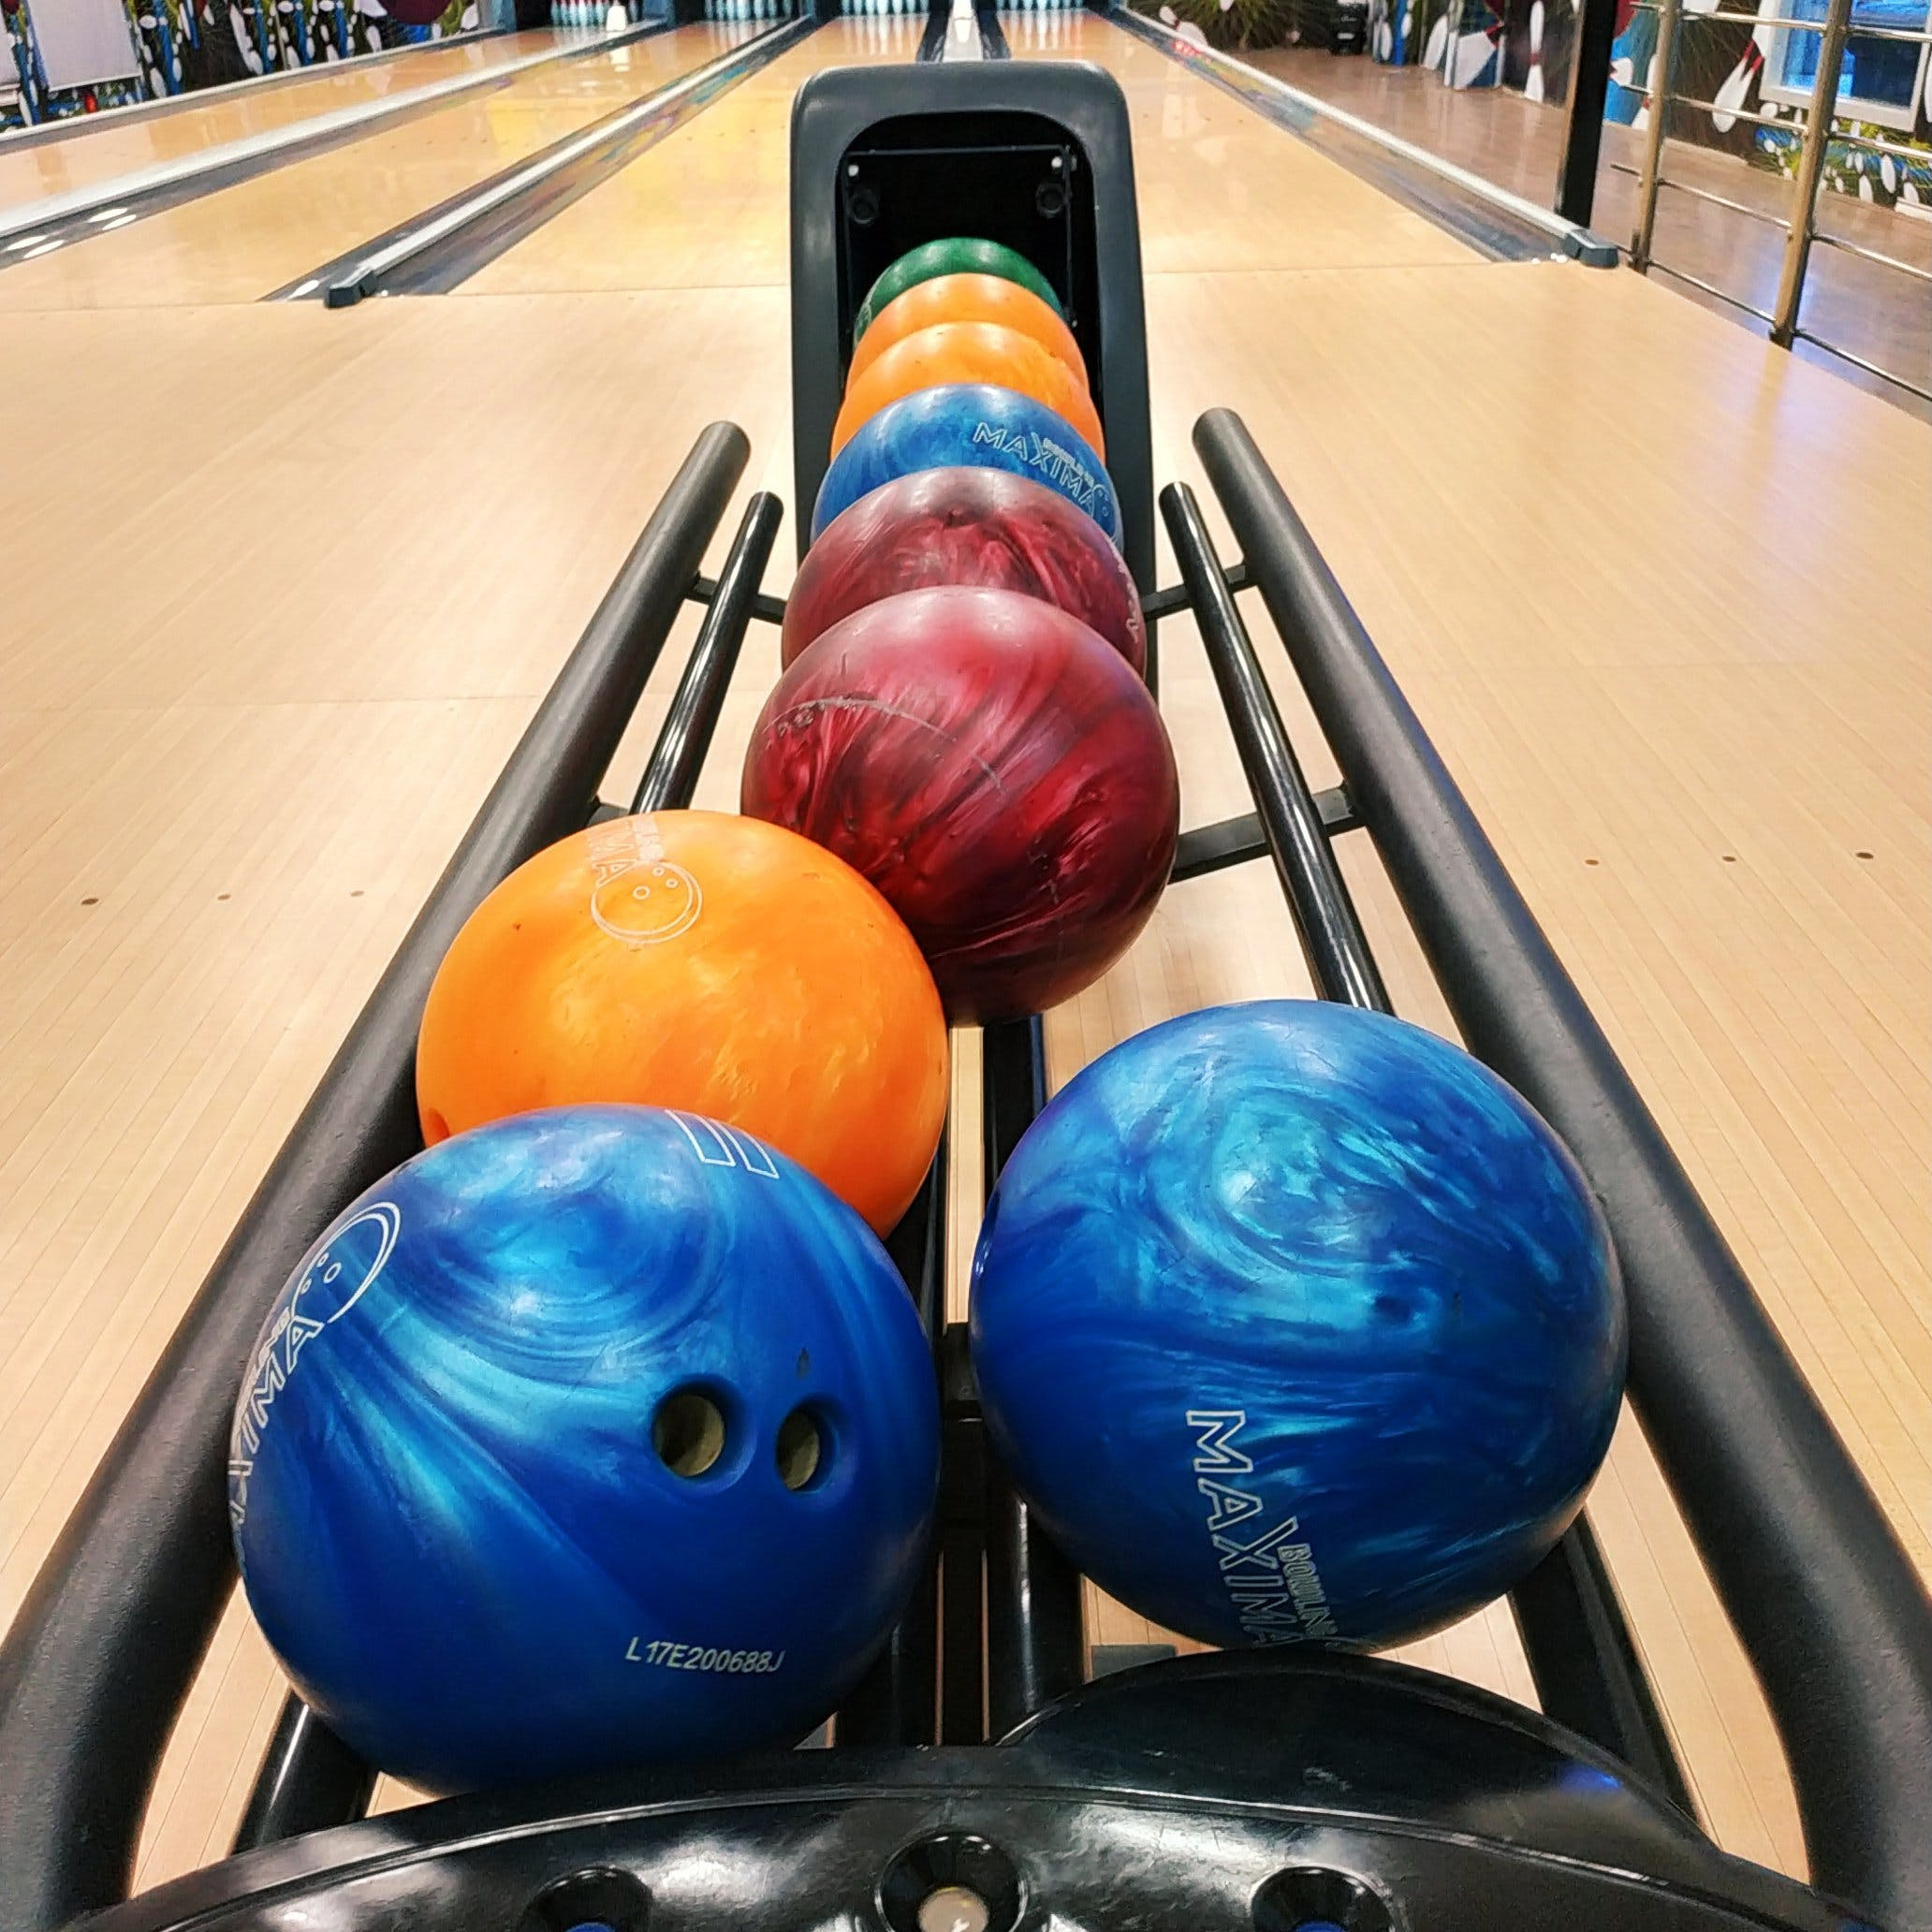 Free stock photo of bowling balls, colors, play